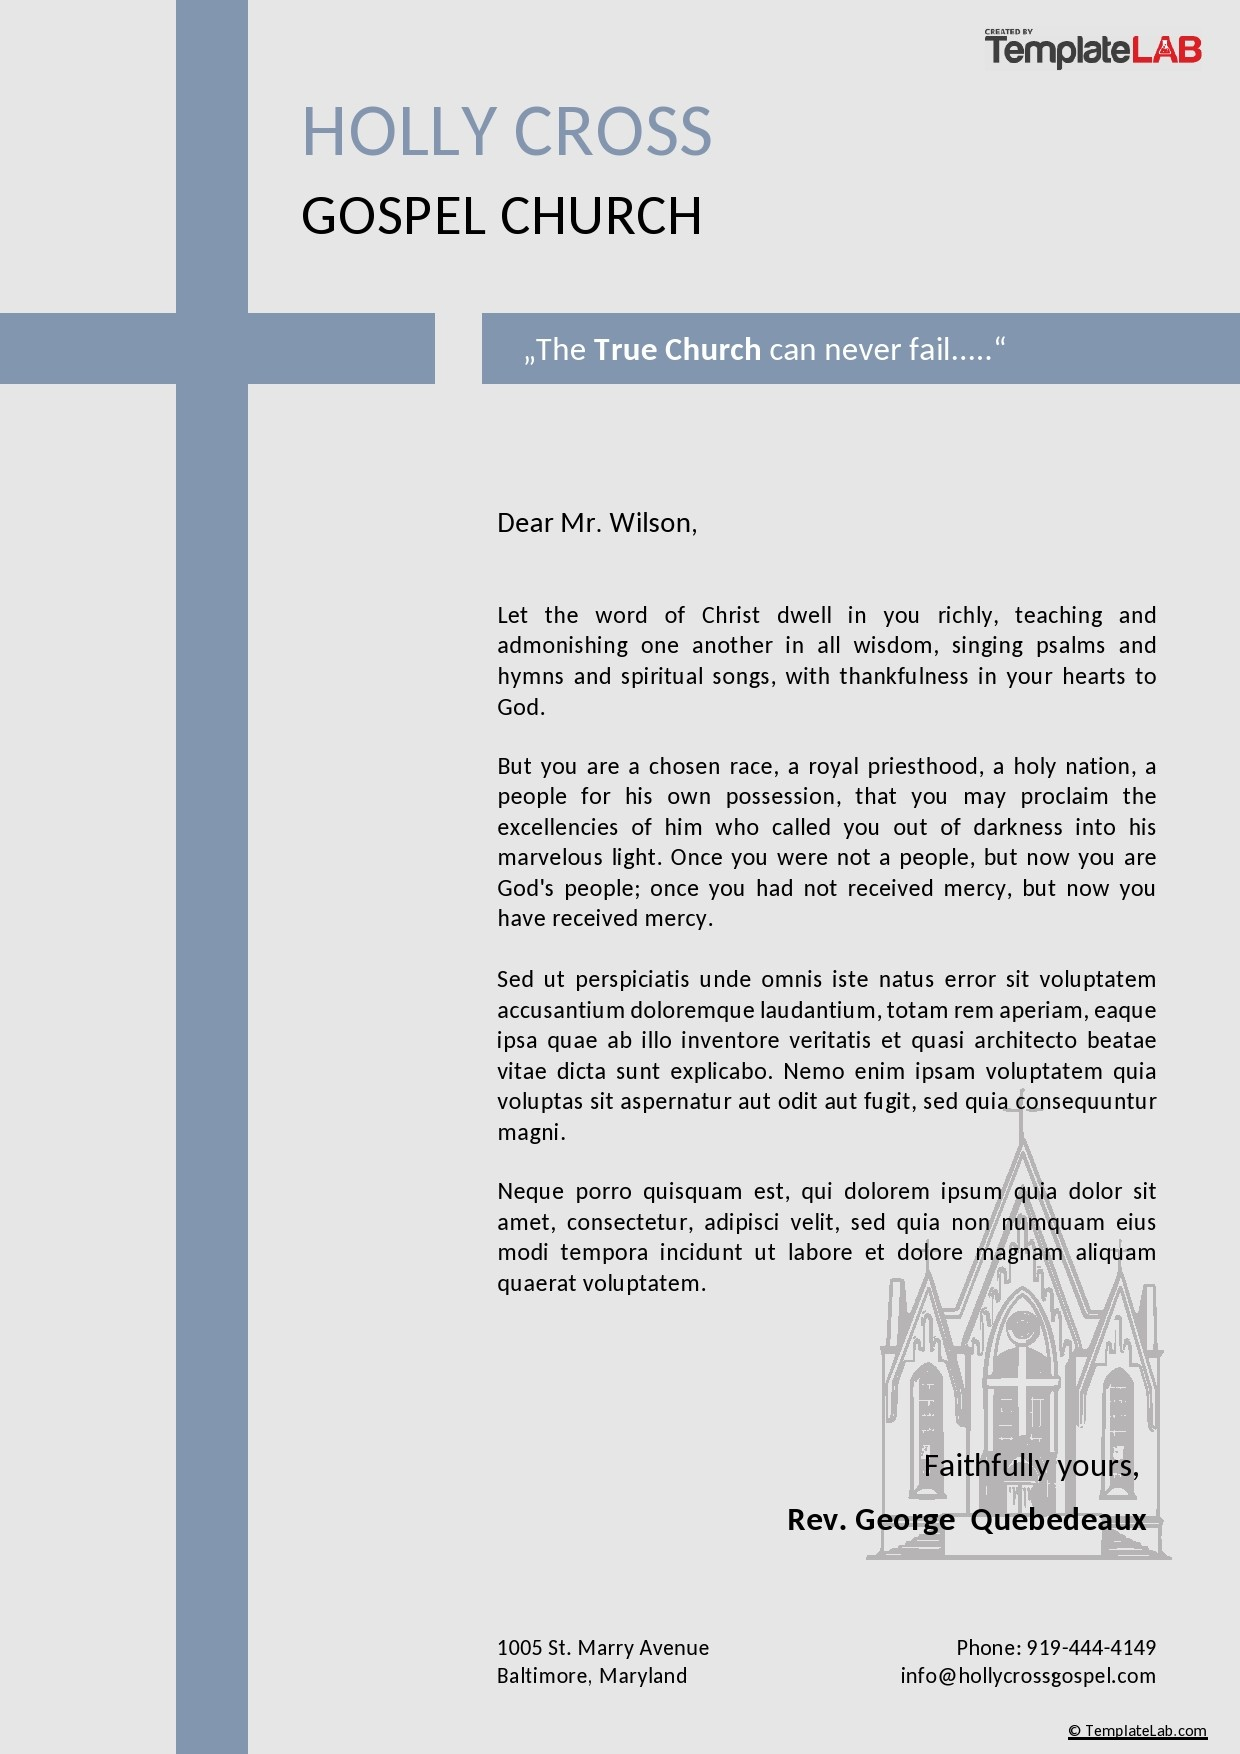 Free Church Letterhead Template - TemplateLab.com